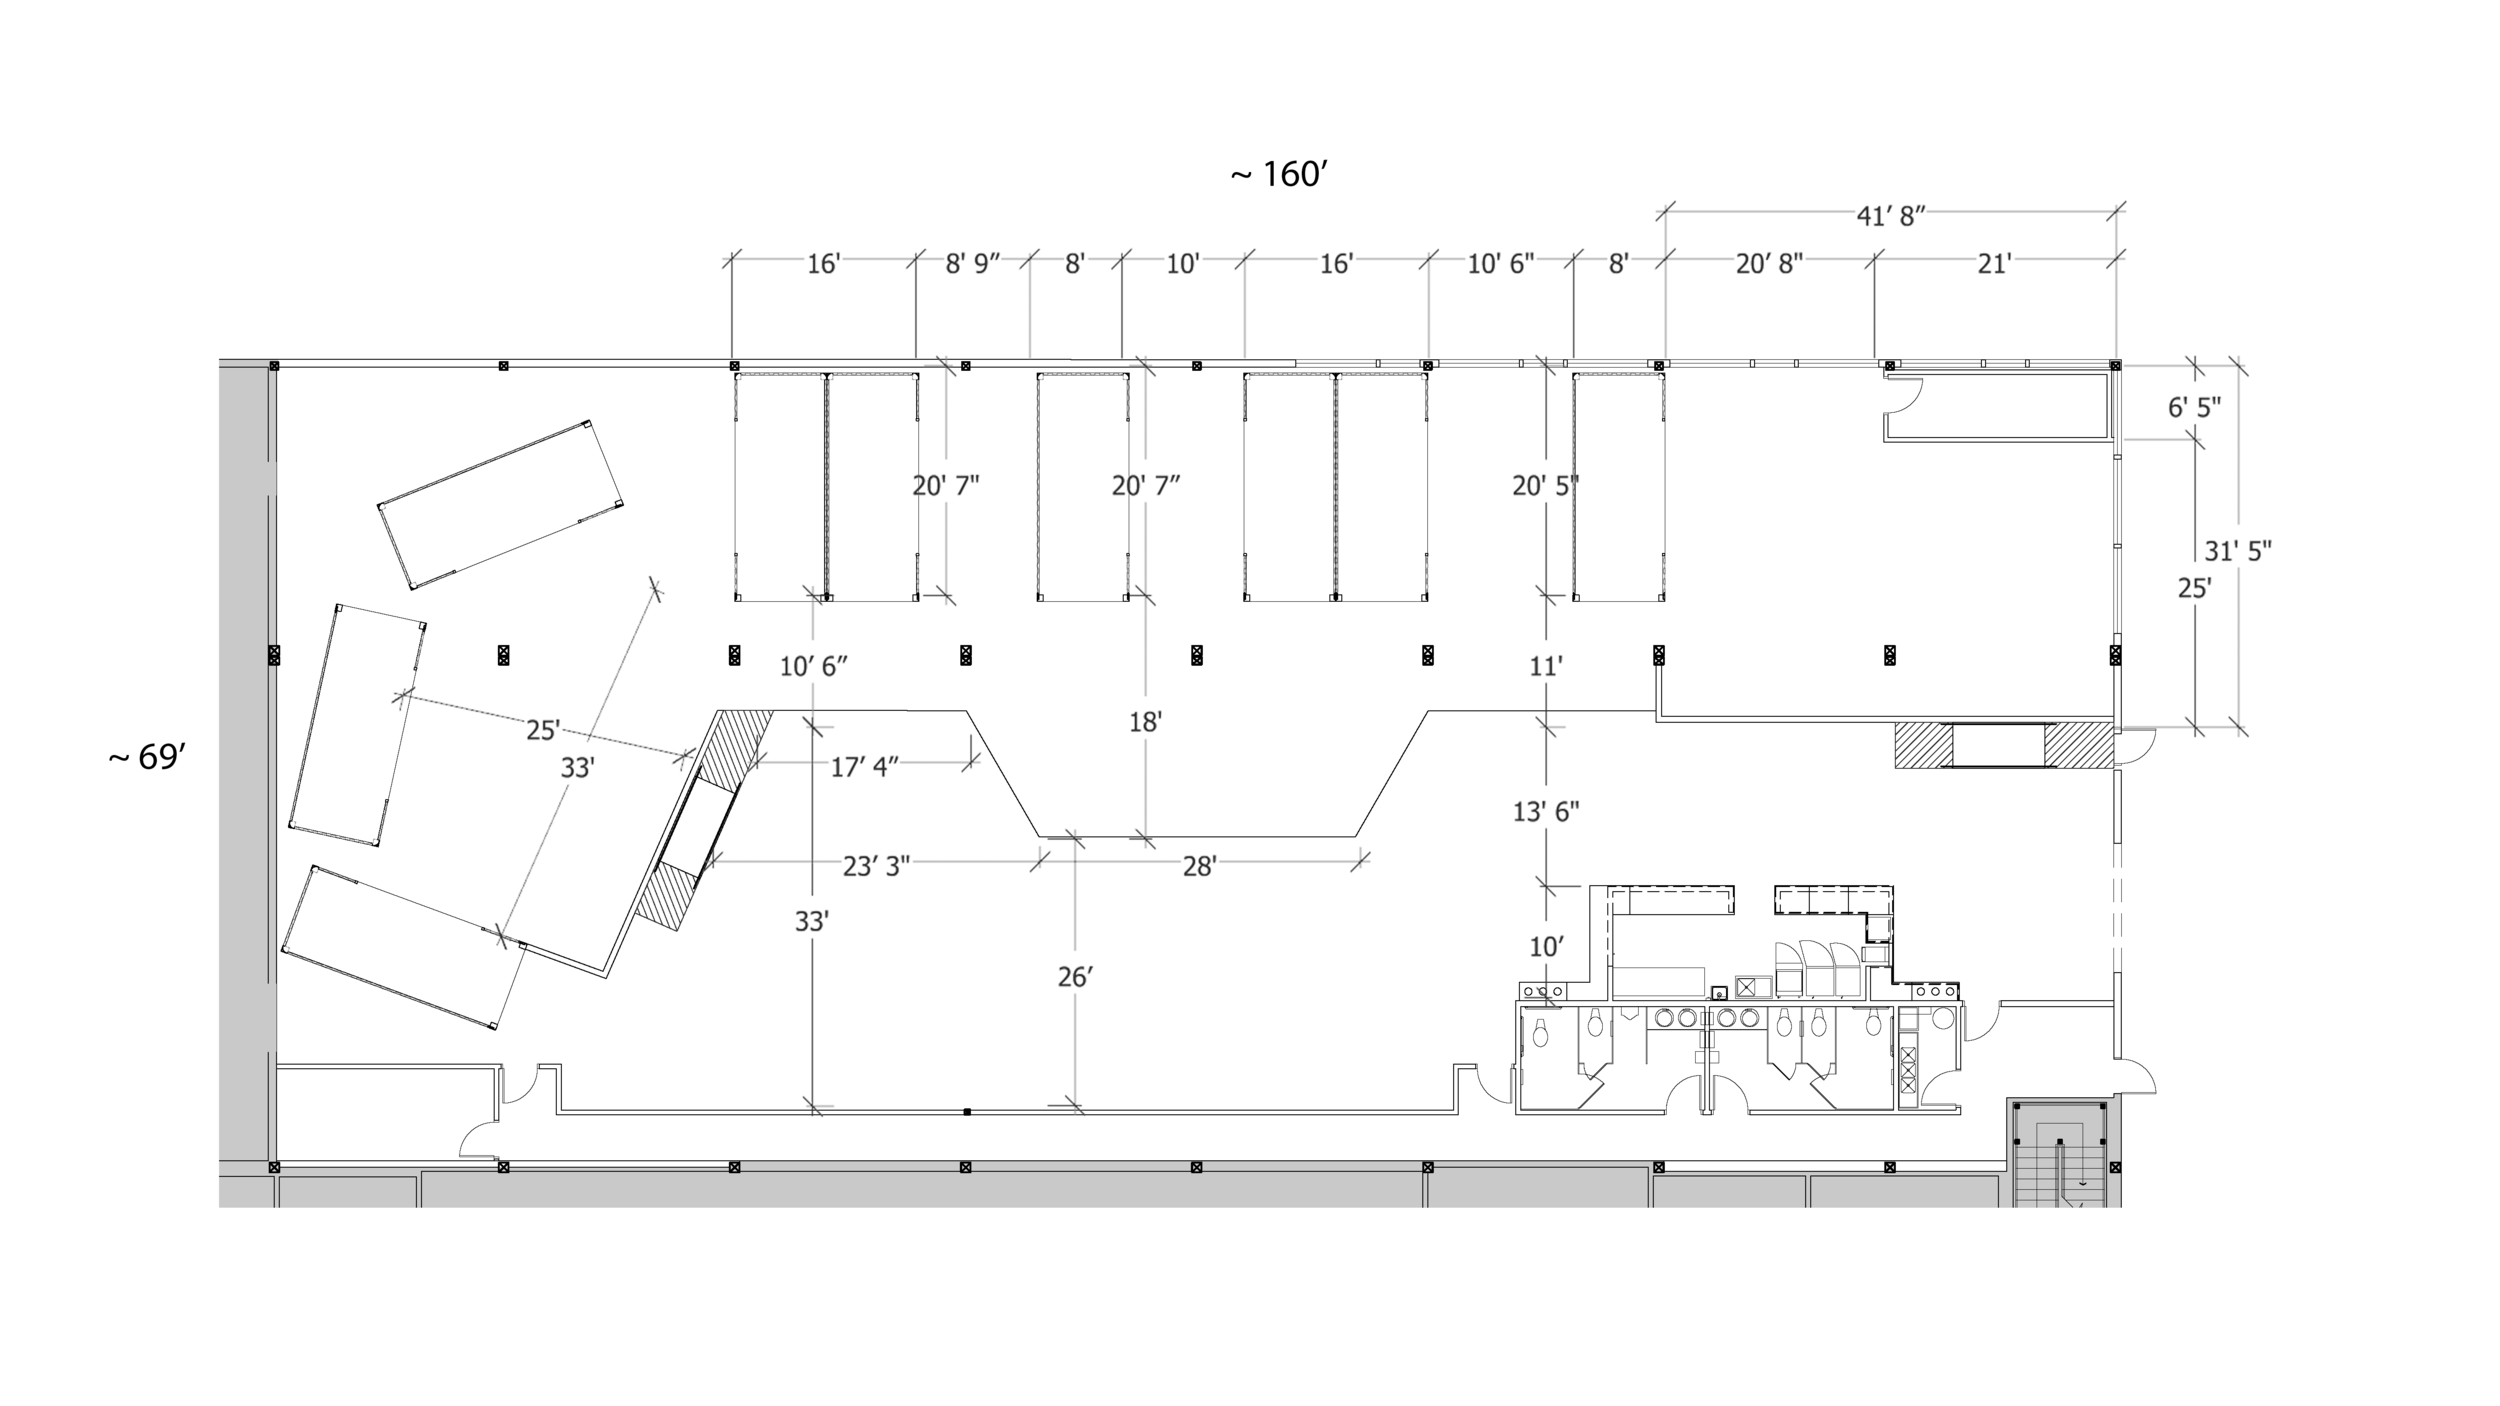 Colorbloq_Floorplan_with_Dimensions.png